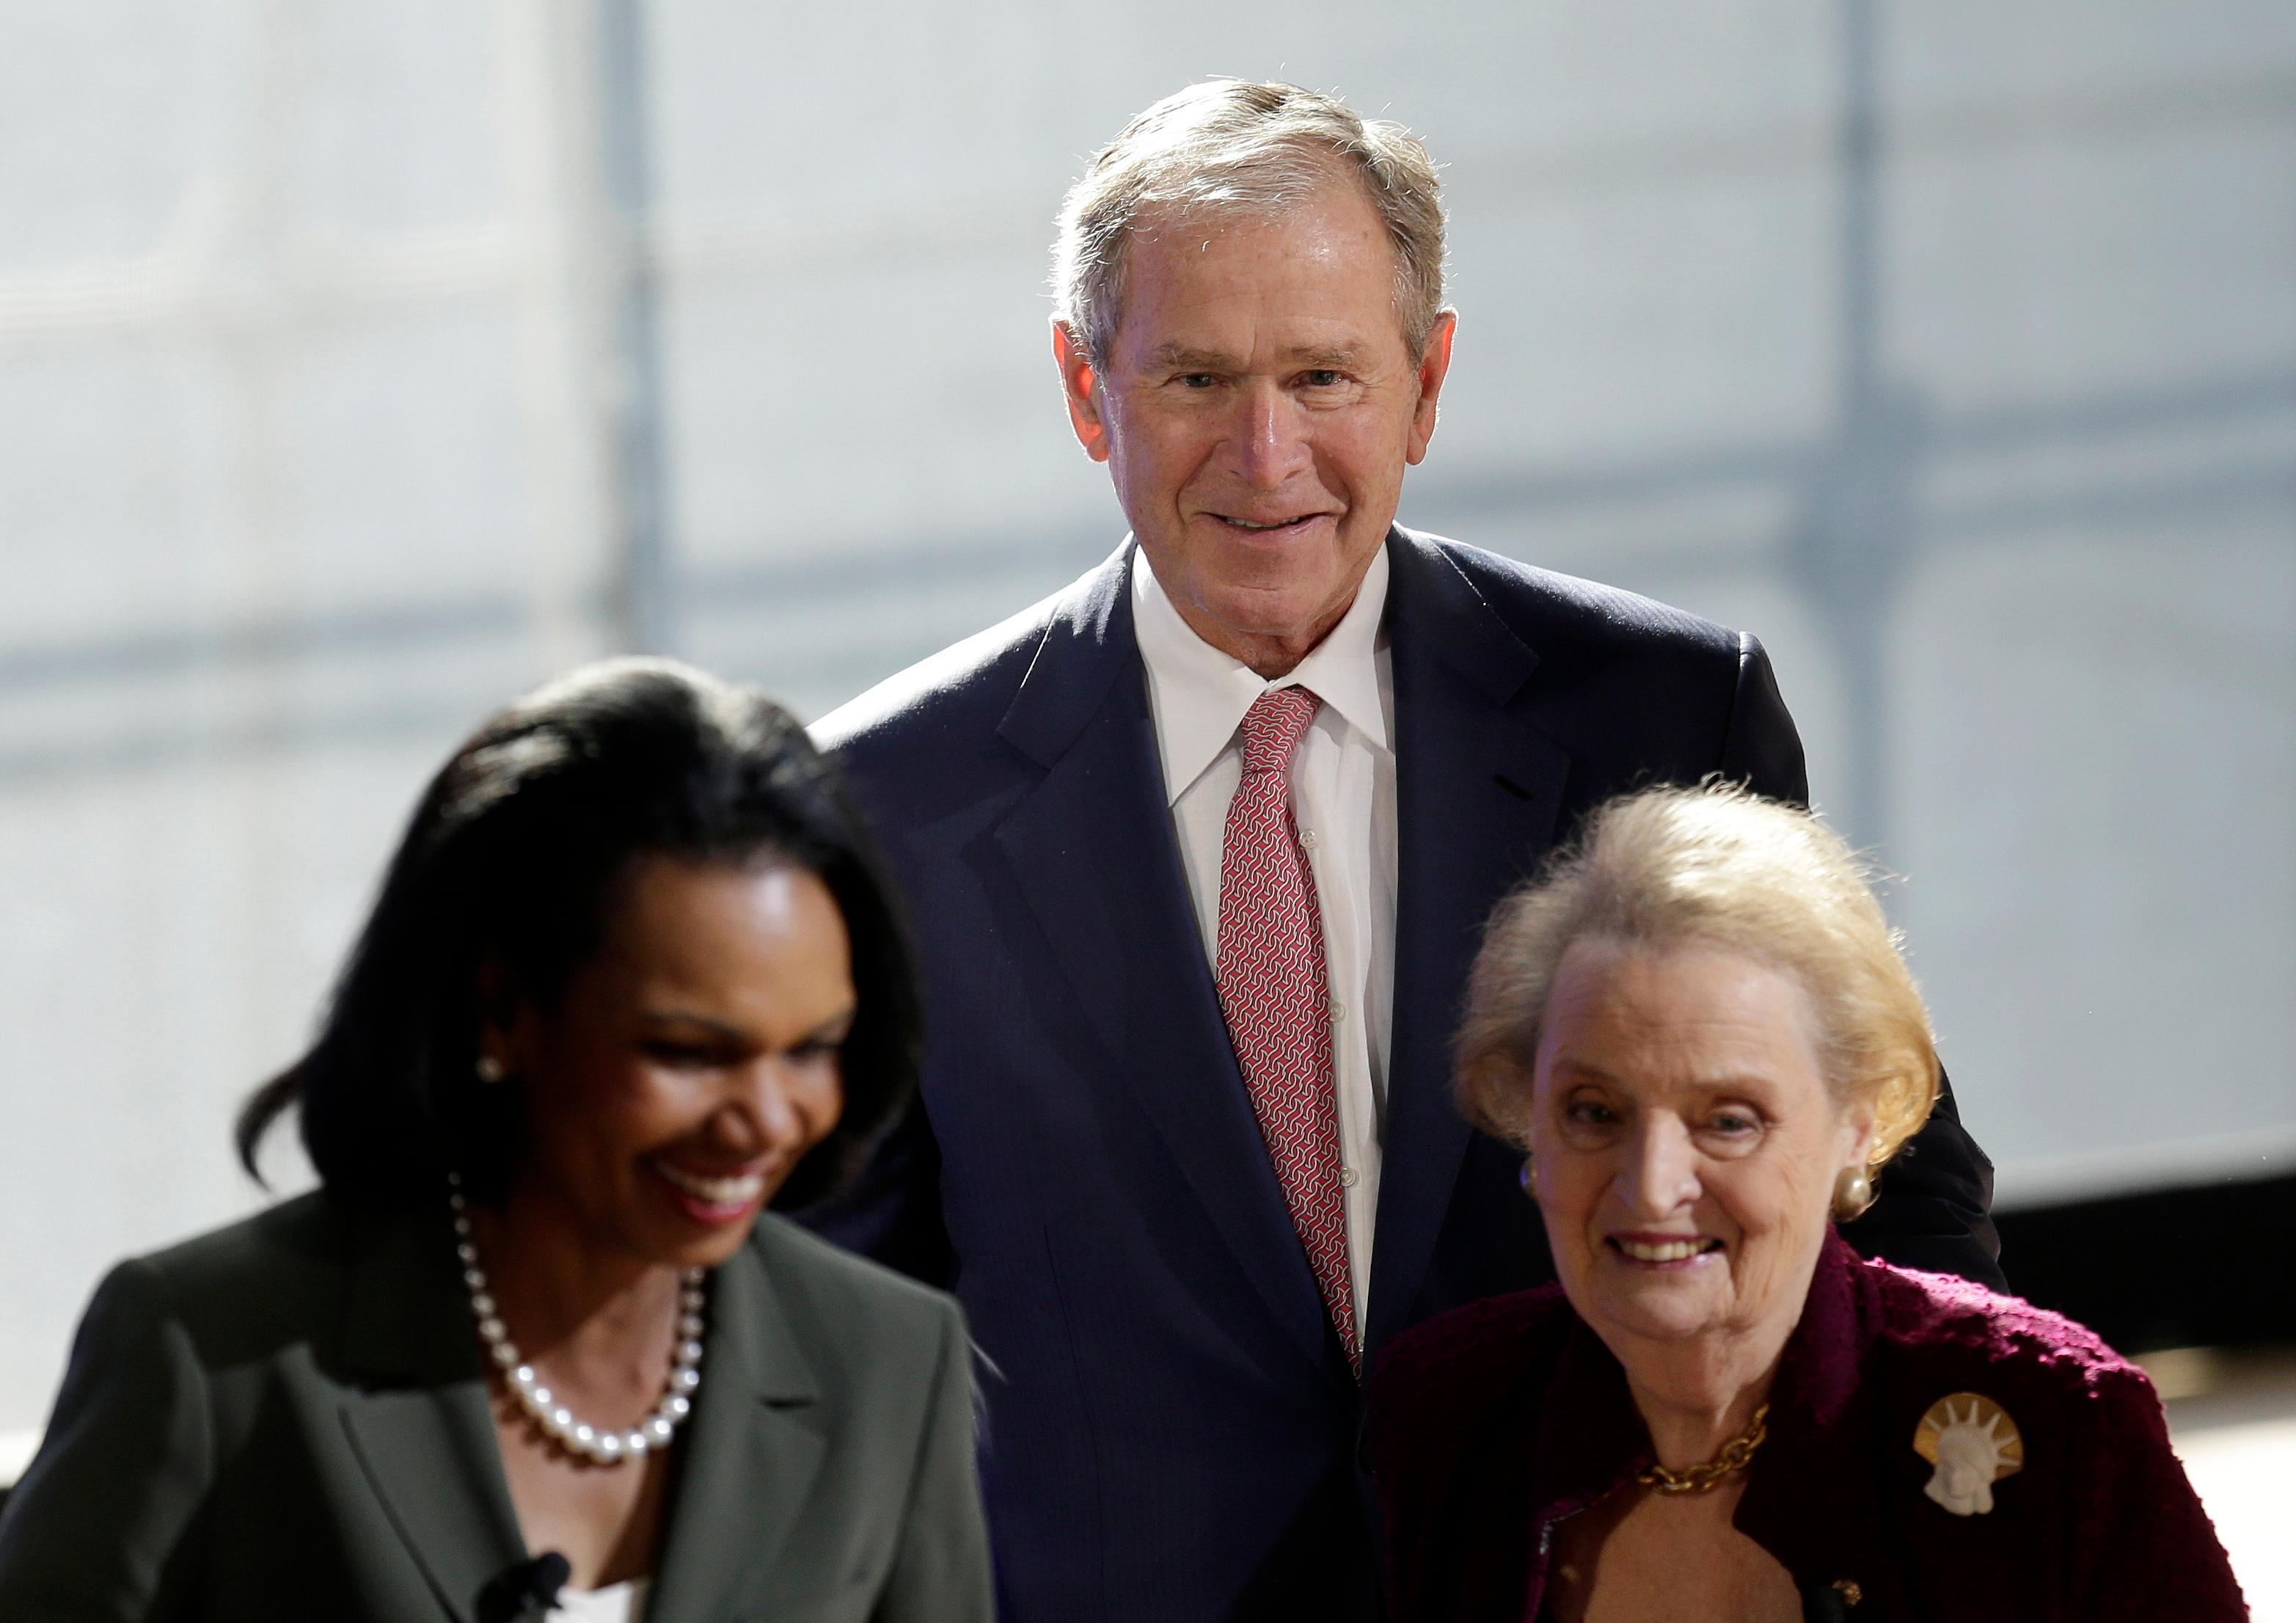 Former U.S. President George W. Bush greets former U.S. Secretary of State  Condoleezza Rice, left, and Madeleine Albright, right, after they participated in a panel discussion at a forum sponsored by the George W. Bush Institute in New York, Thursday, Oct. 19, 2017. (AP Photo/Seth Wenig)